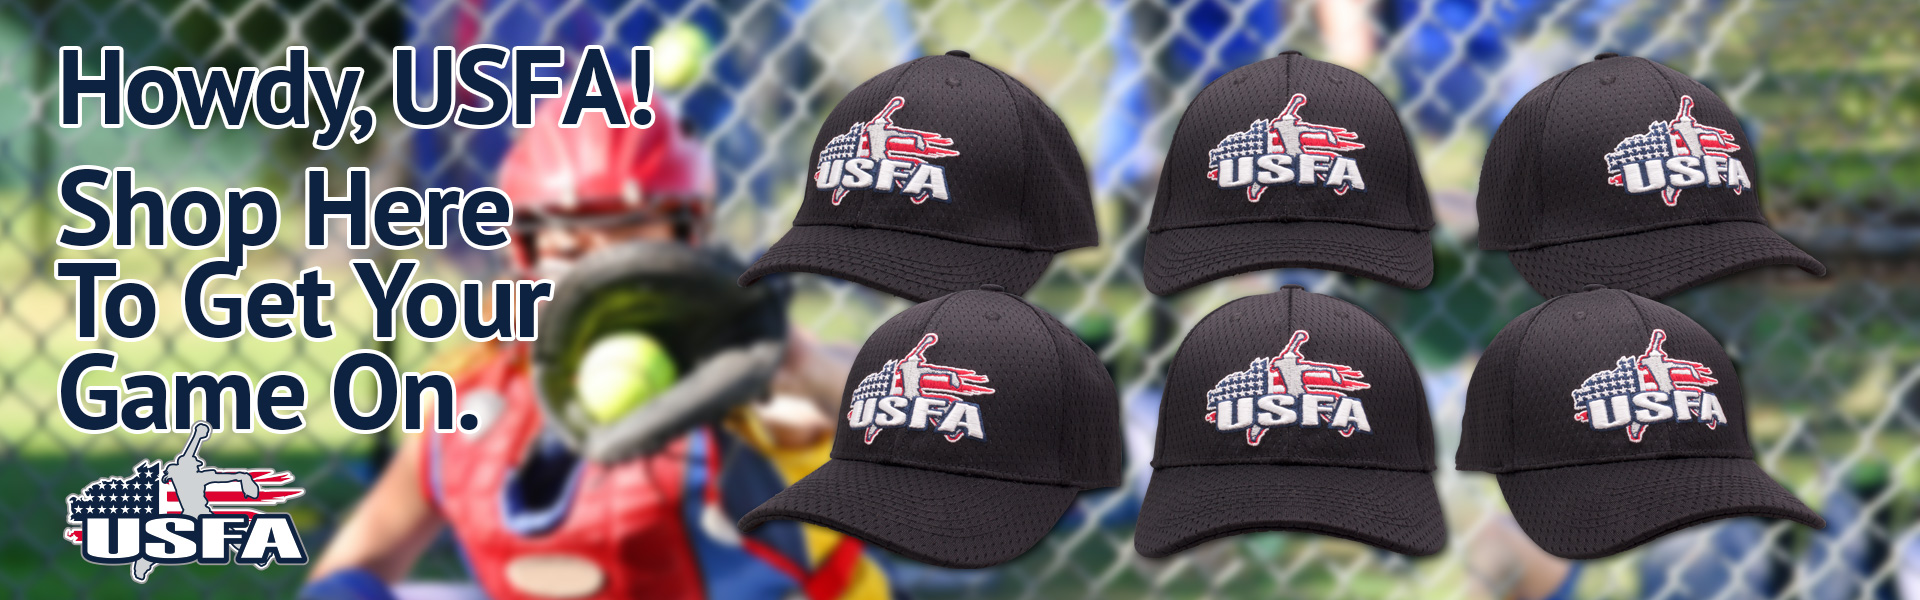 USFA Official Umpire Caps at Success Promotions